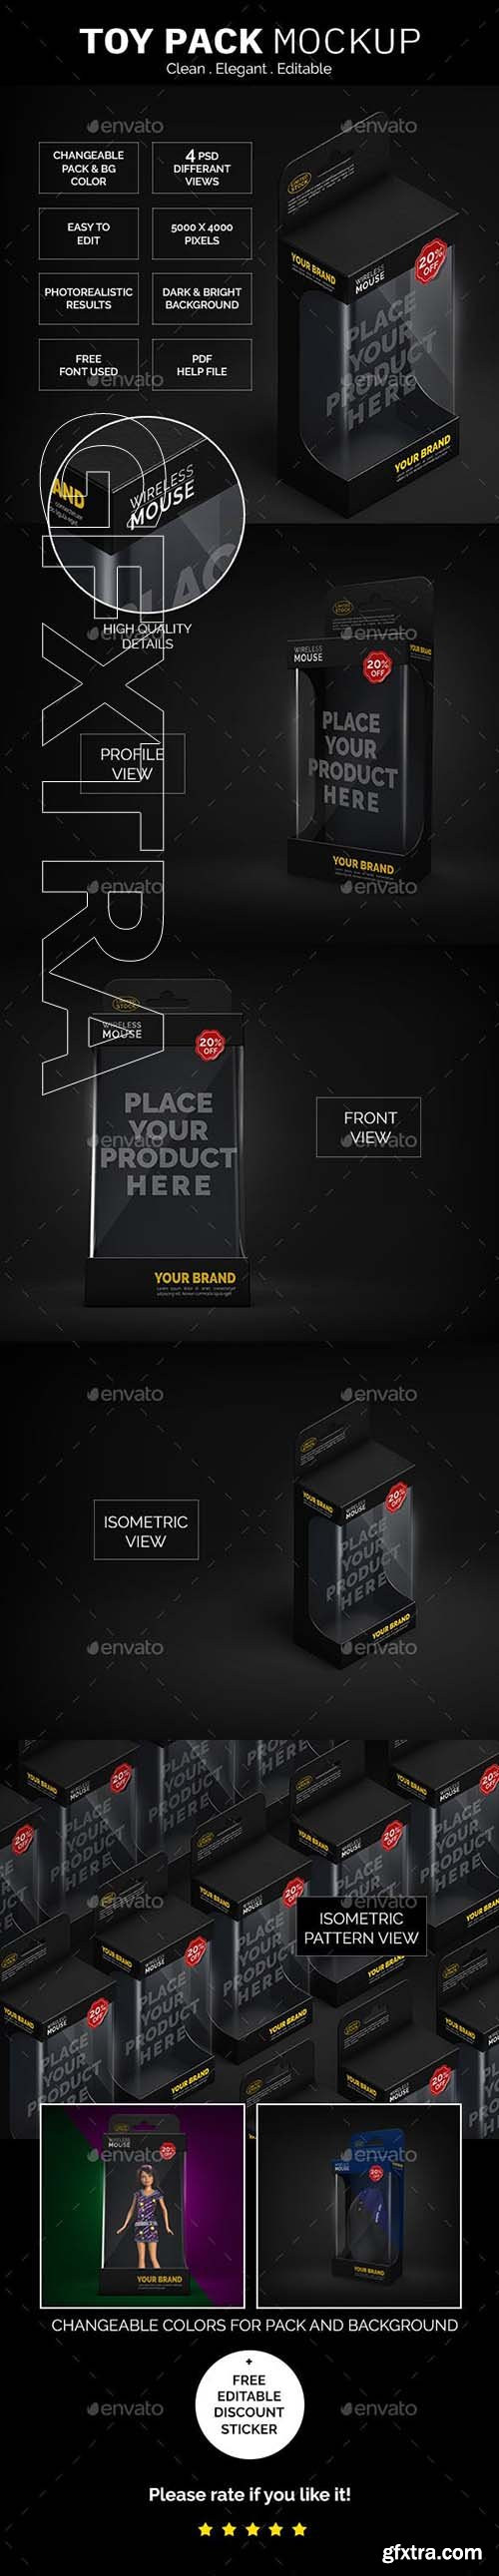 GraphicRiver - Toy Pack Mockup 22882245